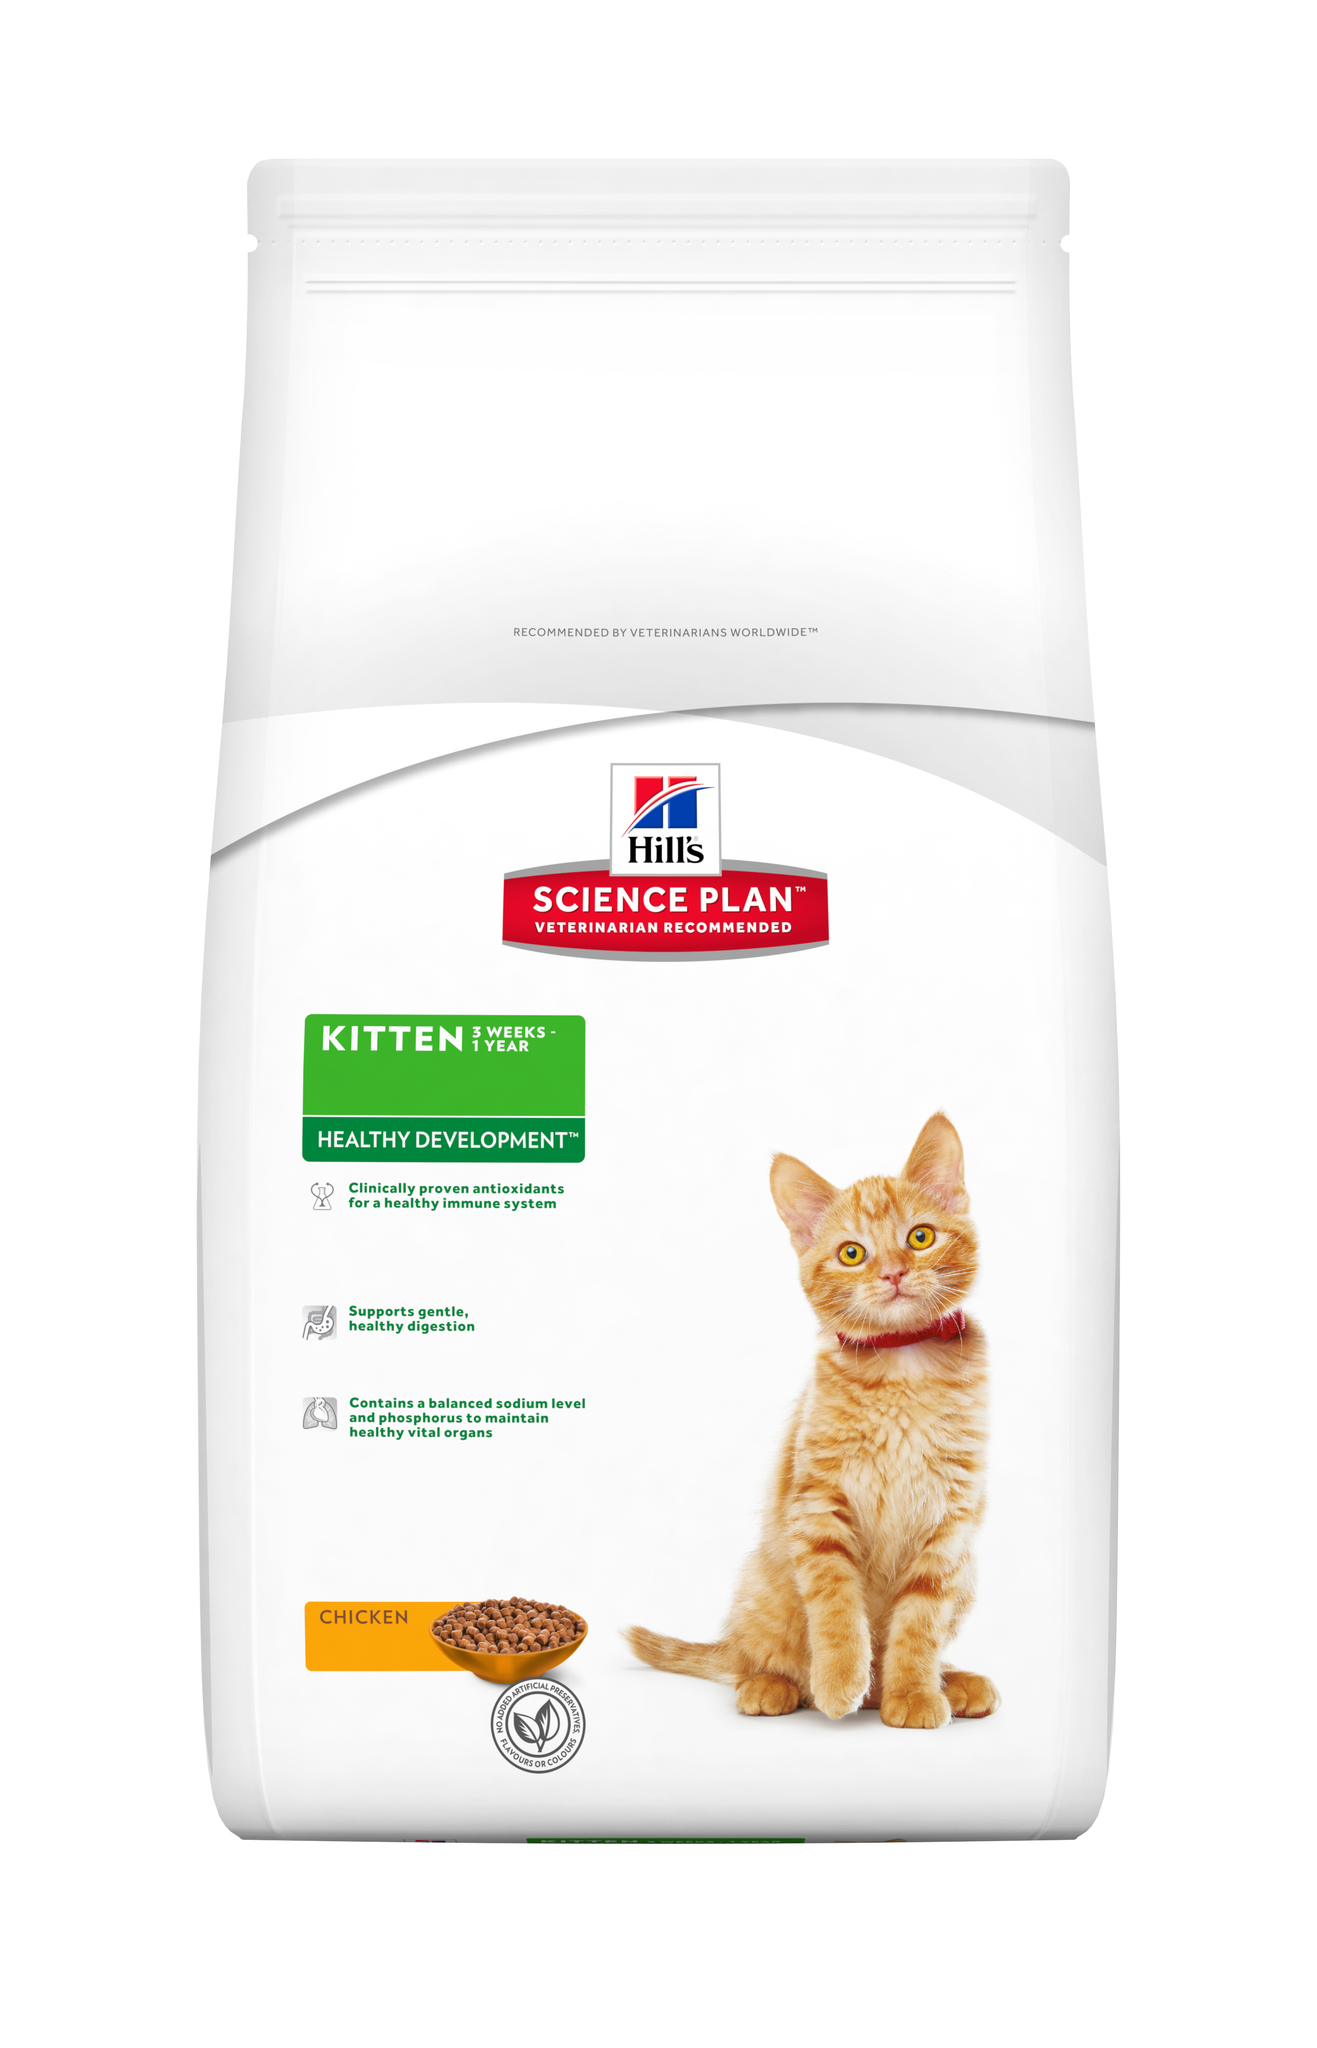 купить хиллс Hill's™ Science Plan™ Kitten Healthy Development Chicken корм для котят с курицей